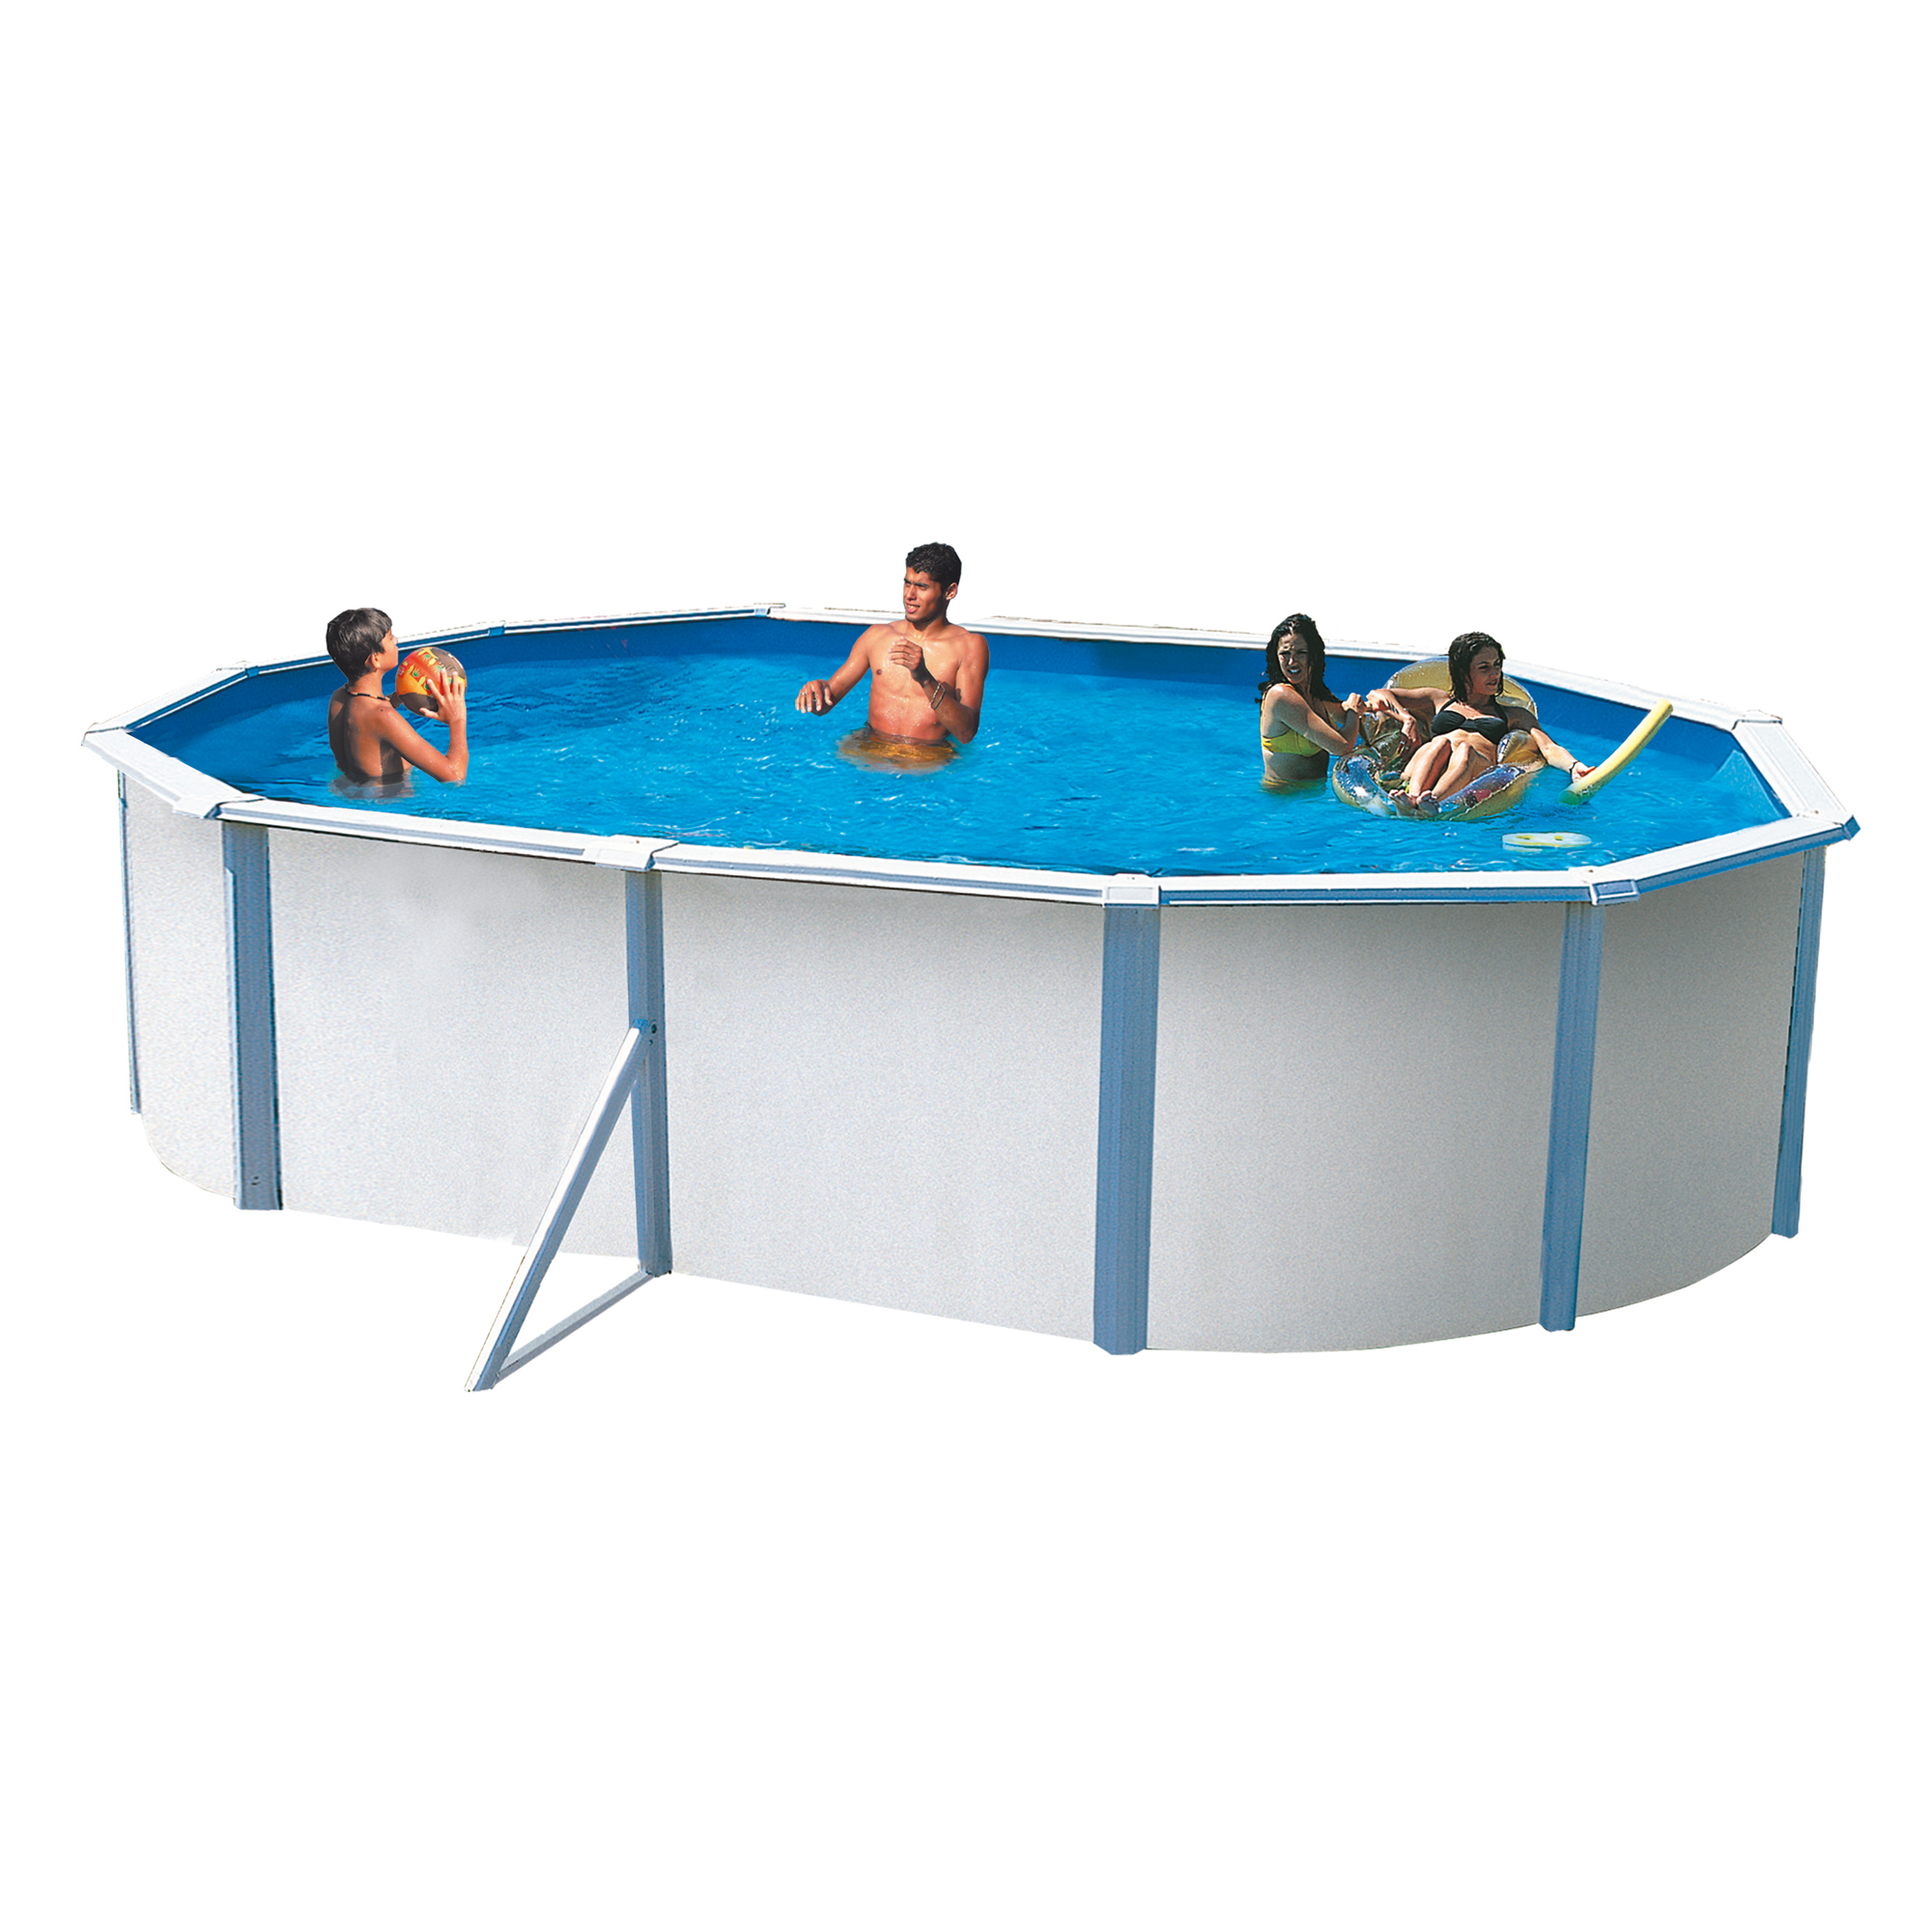 Piscine hors sol trigano for Piscine hors sol metal